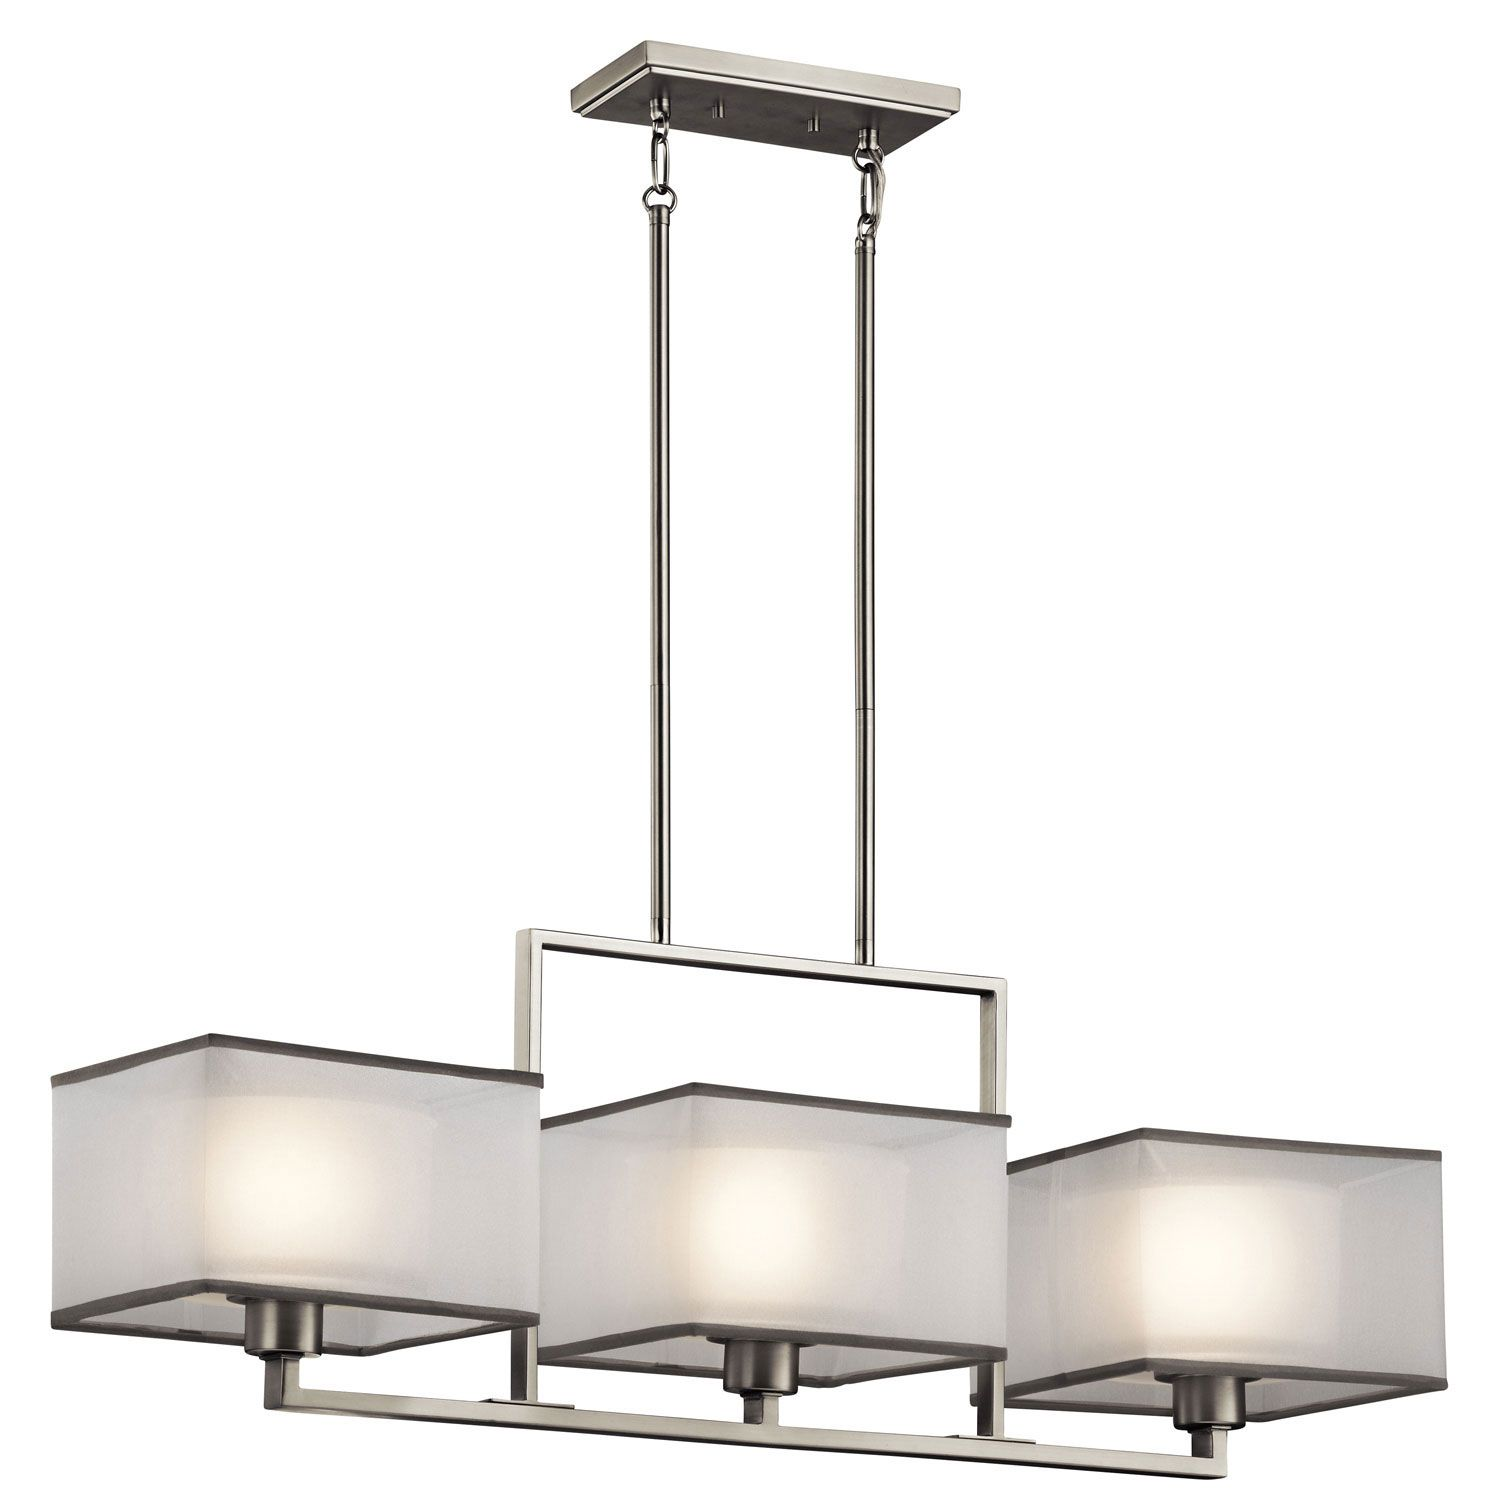 Kichler Kailey Brushed Nickel Three Light Single Linear Chandelier